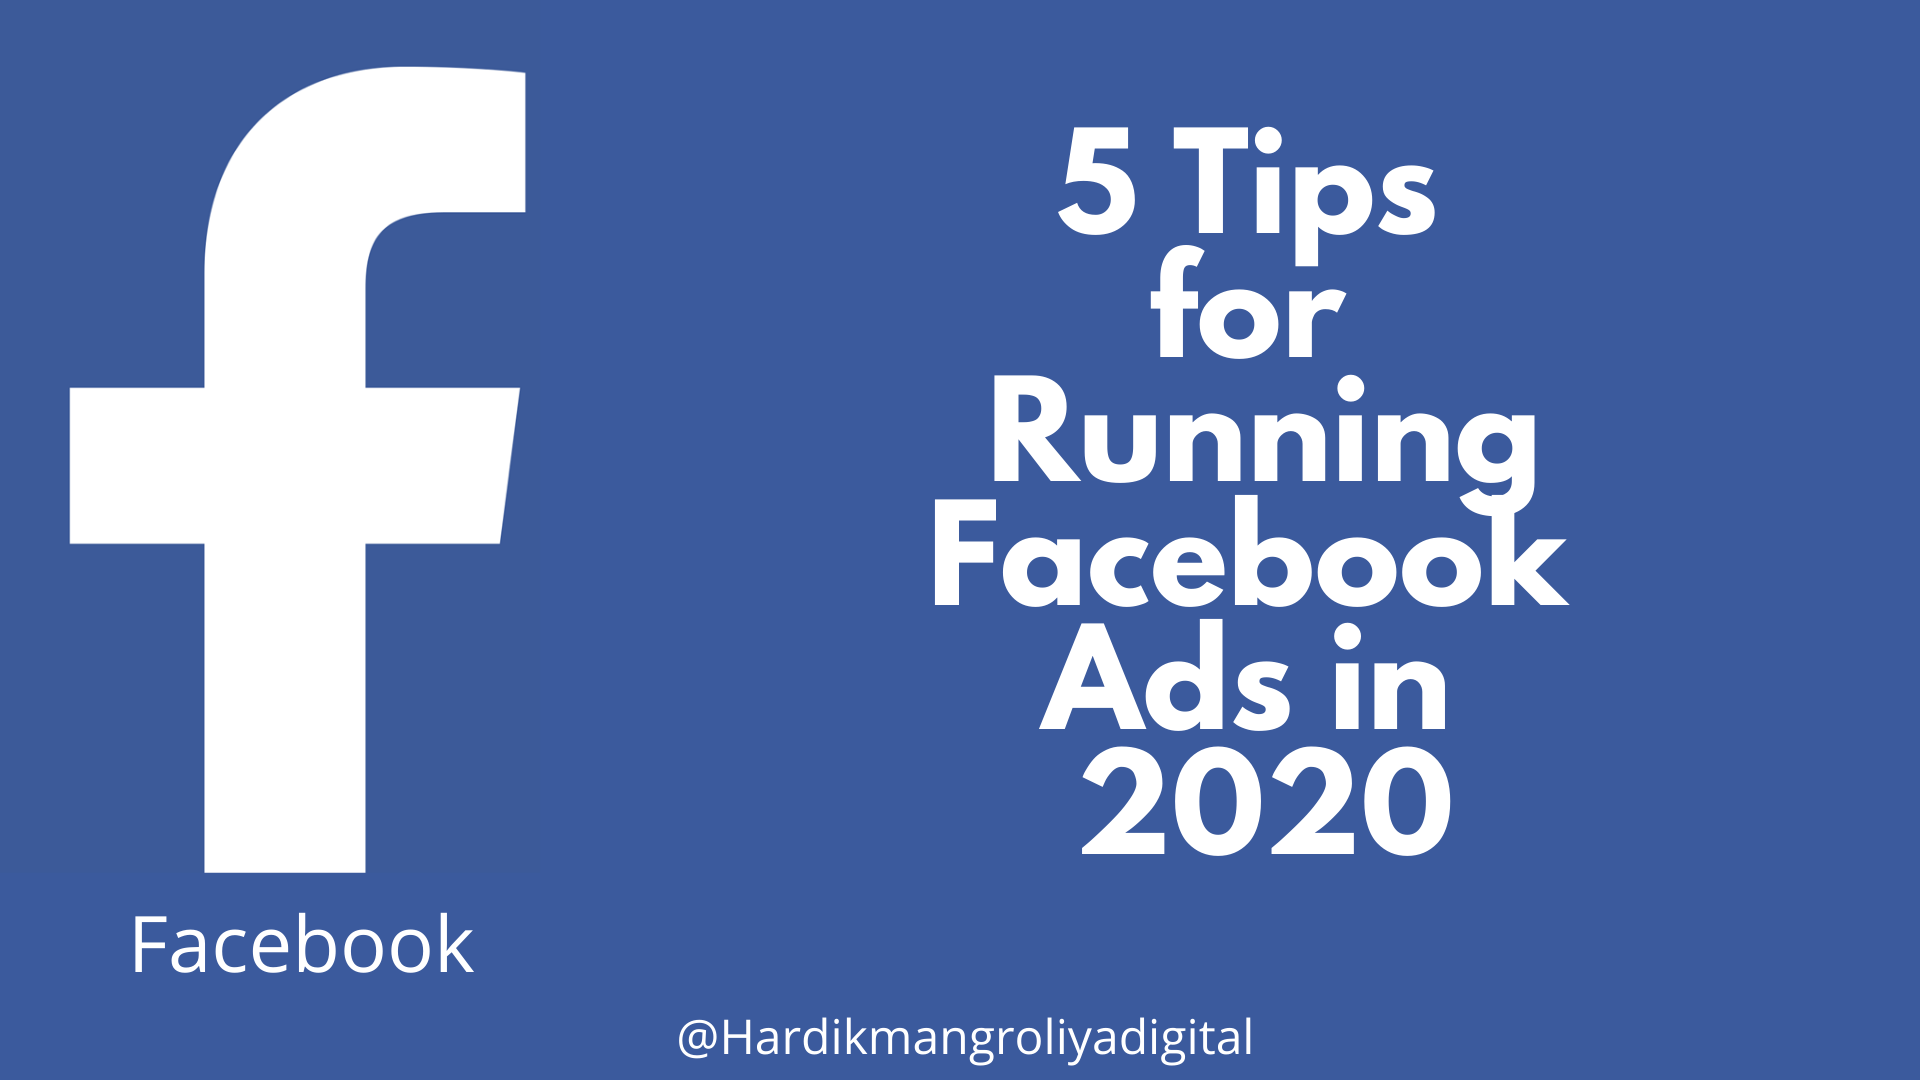 5 Tips for Running Facebook Ads in 2020